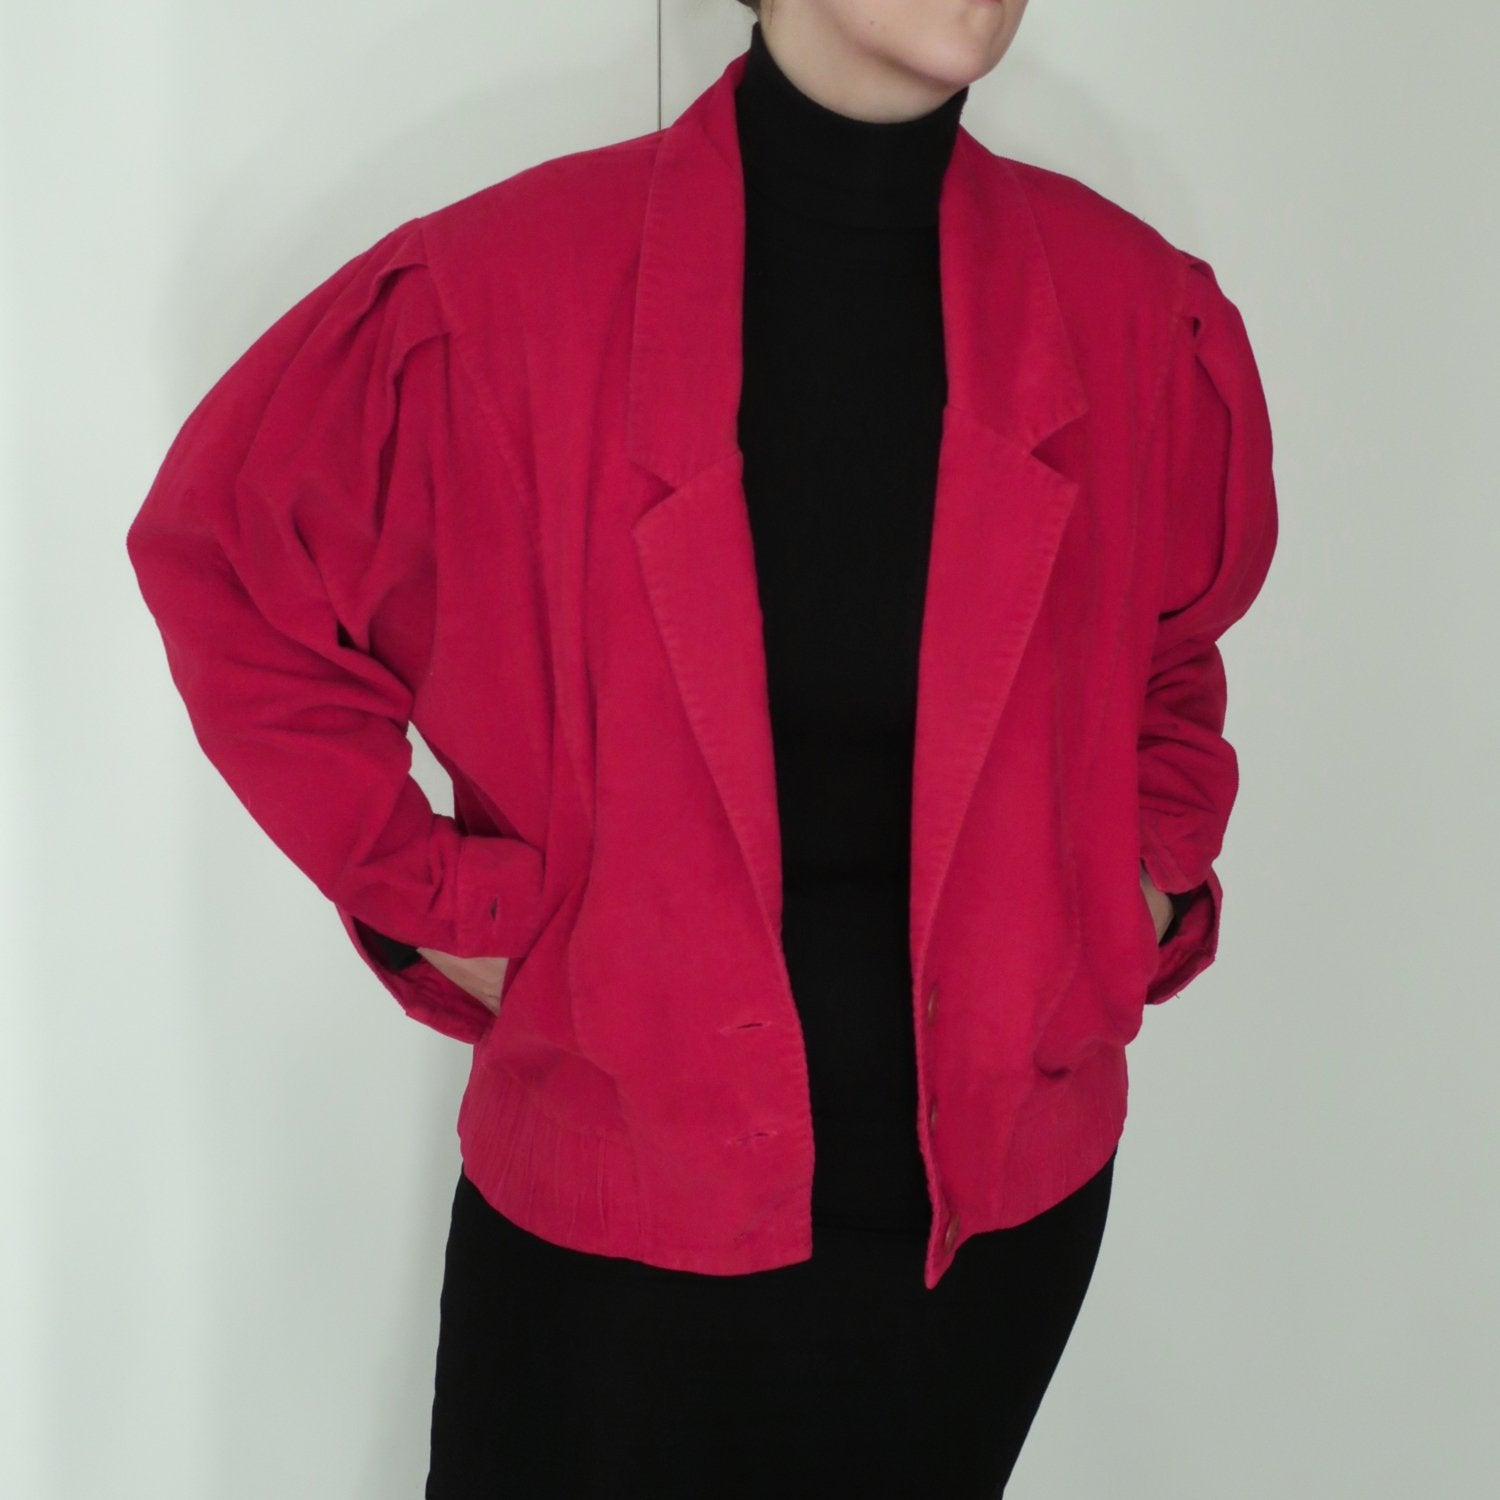 Second Room Vintage Clothing. Vintage cranberry corduroy jacket, with 3 button closure, two front pockets, and dolman sleeves with pleating details at the shoulders. No shoulder pads, one button on each cuff, and an elastic waist. Free North American shipping on all orders.